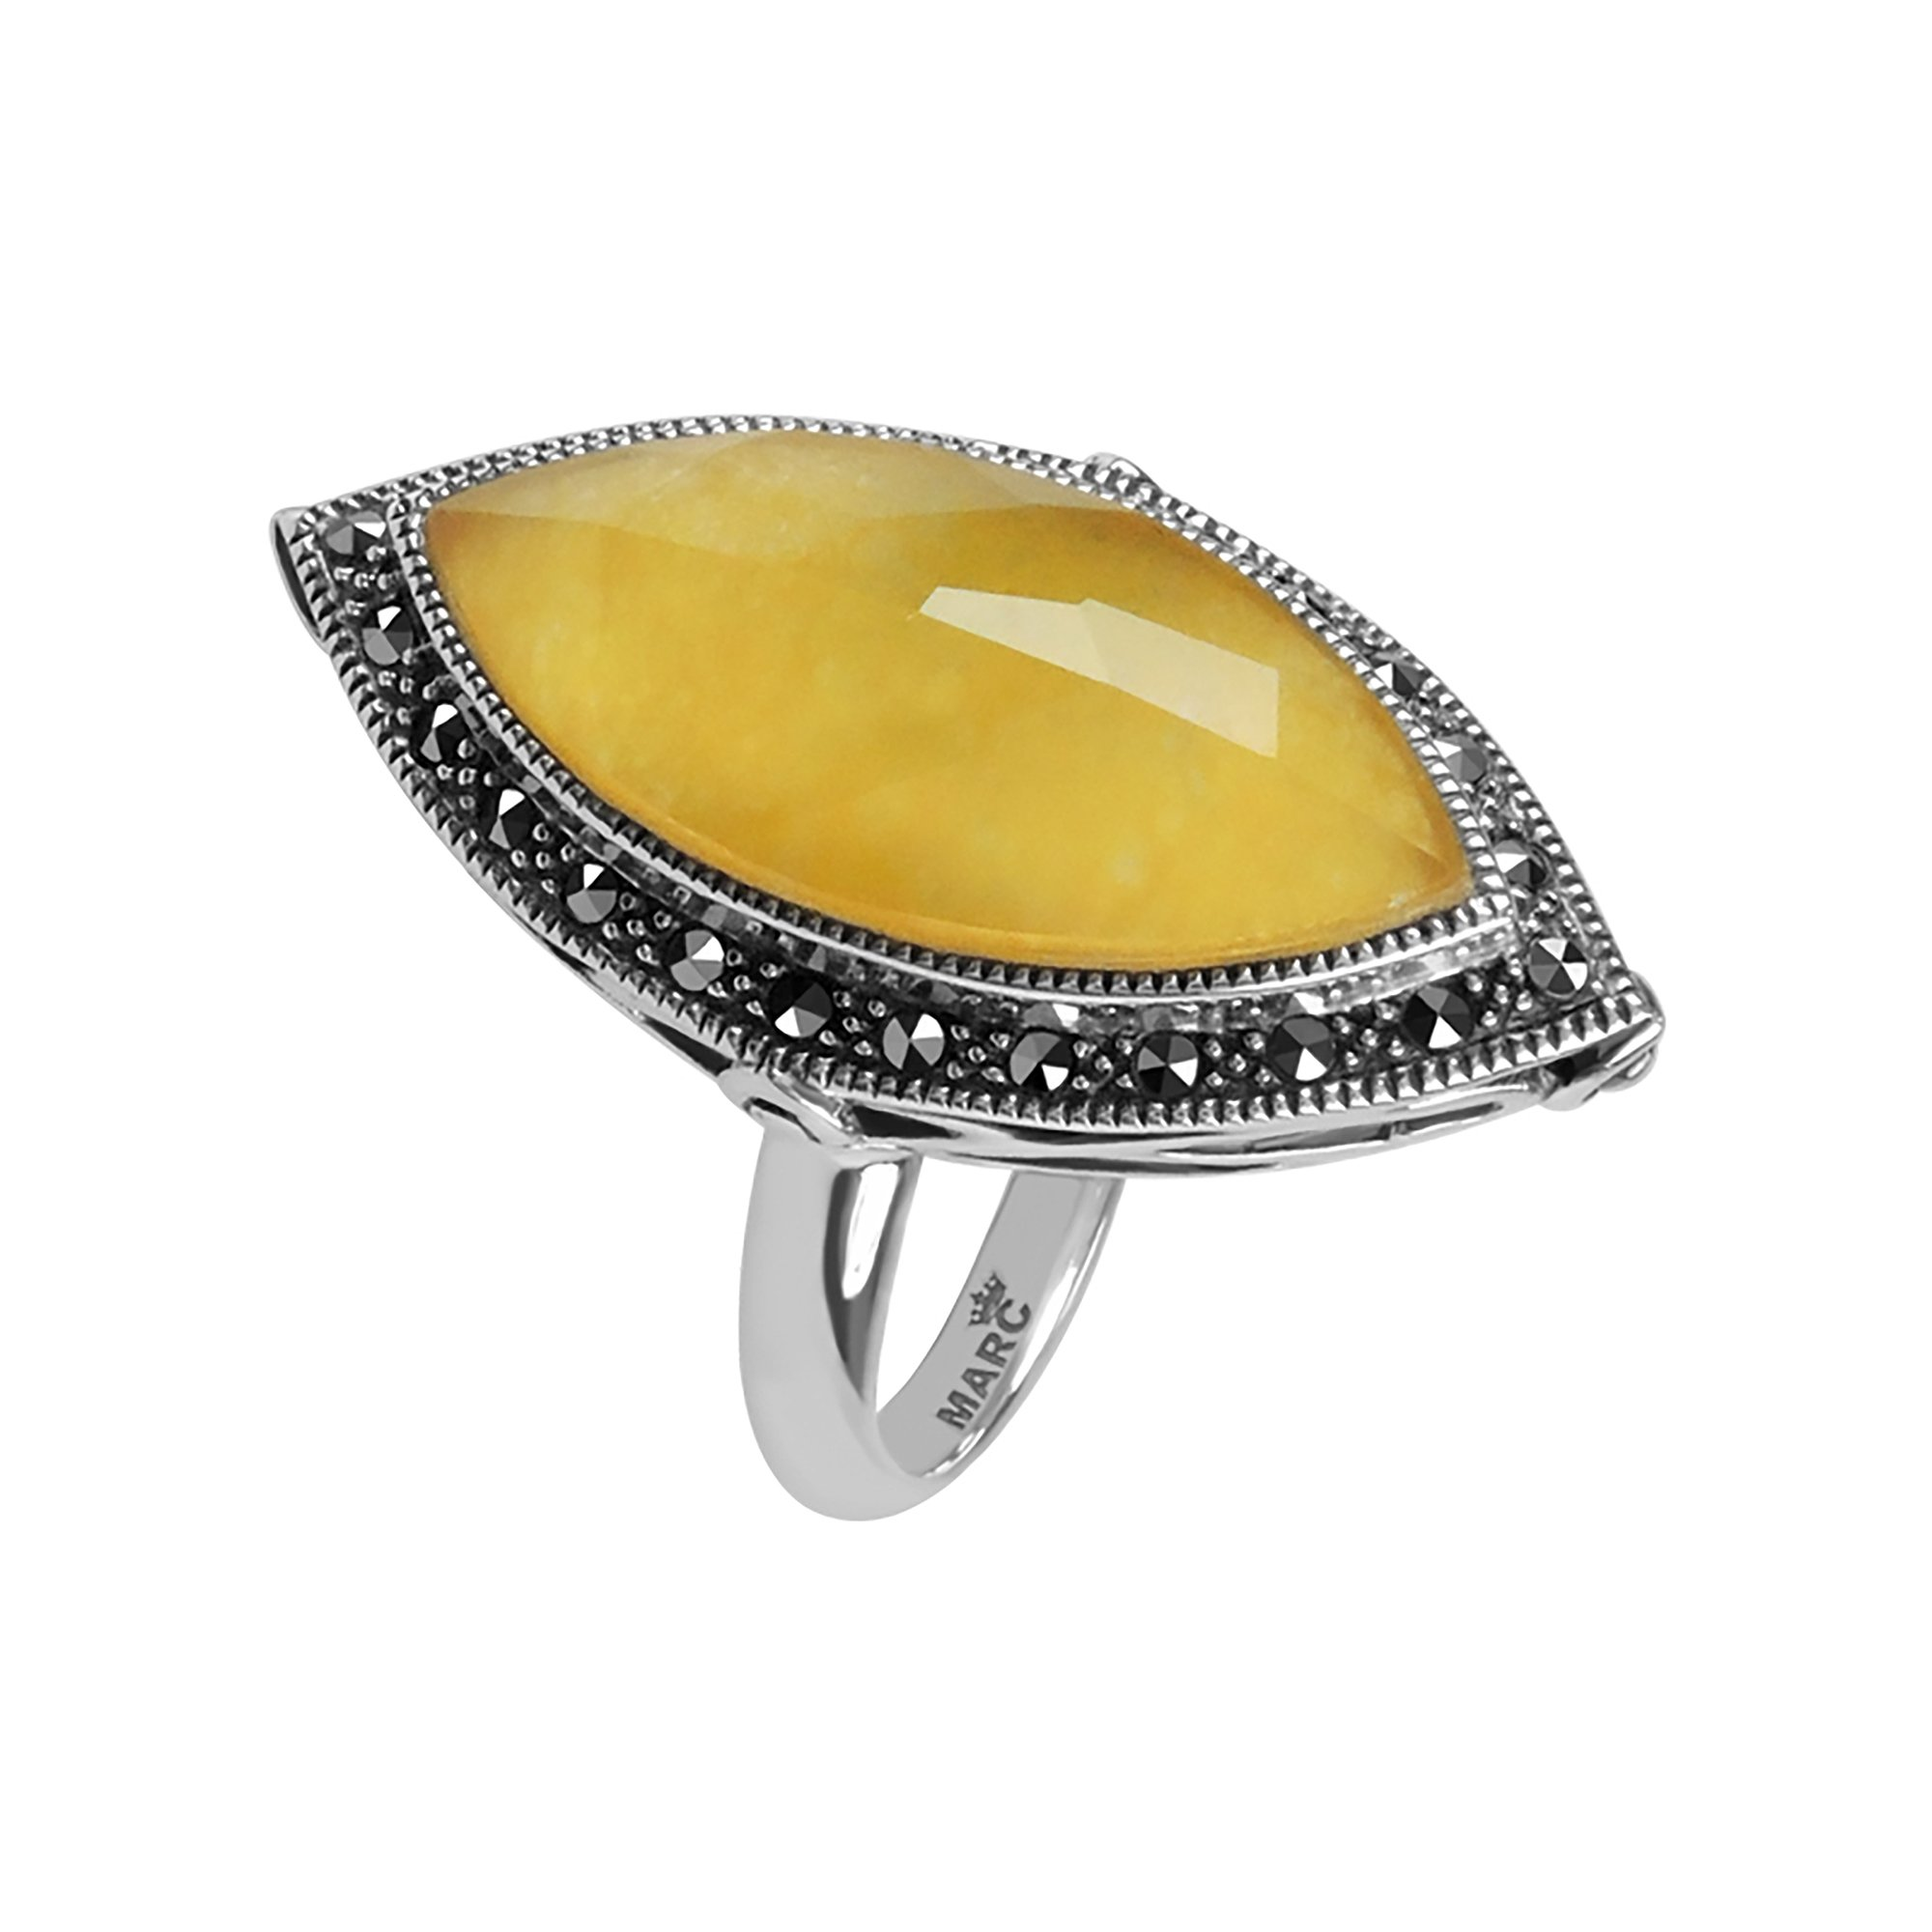 Aura by TJM Sterling Silver 7.80 cts Crystal & Yellow Quartzite Doublete and Marcasite Adjustable Size (5-10) Ring